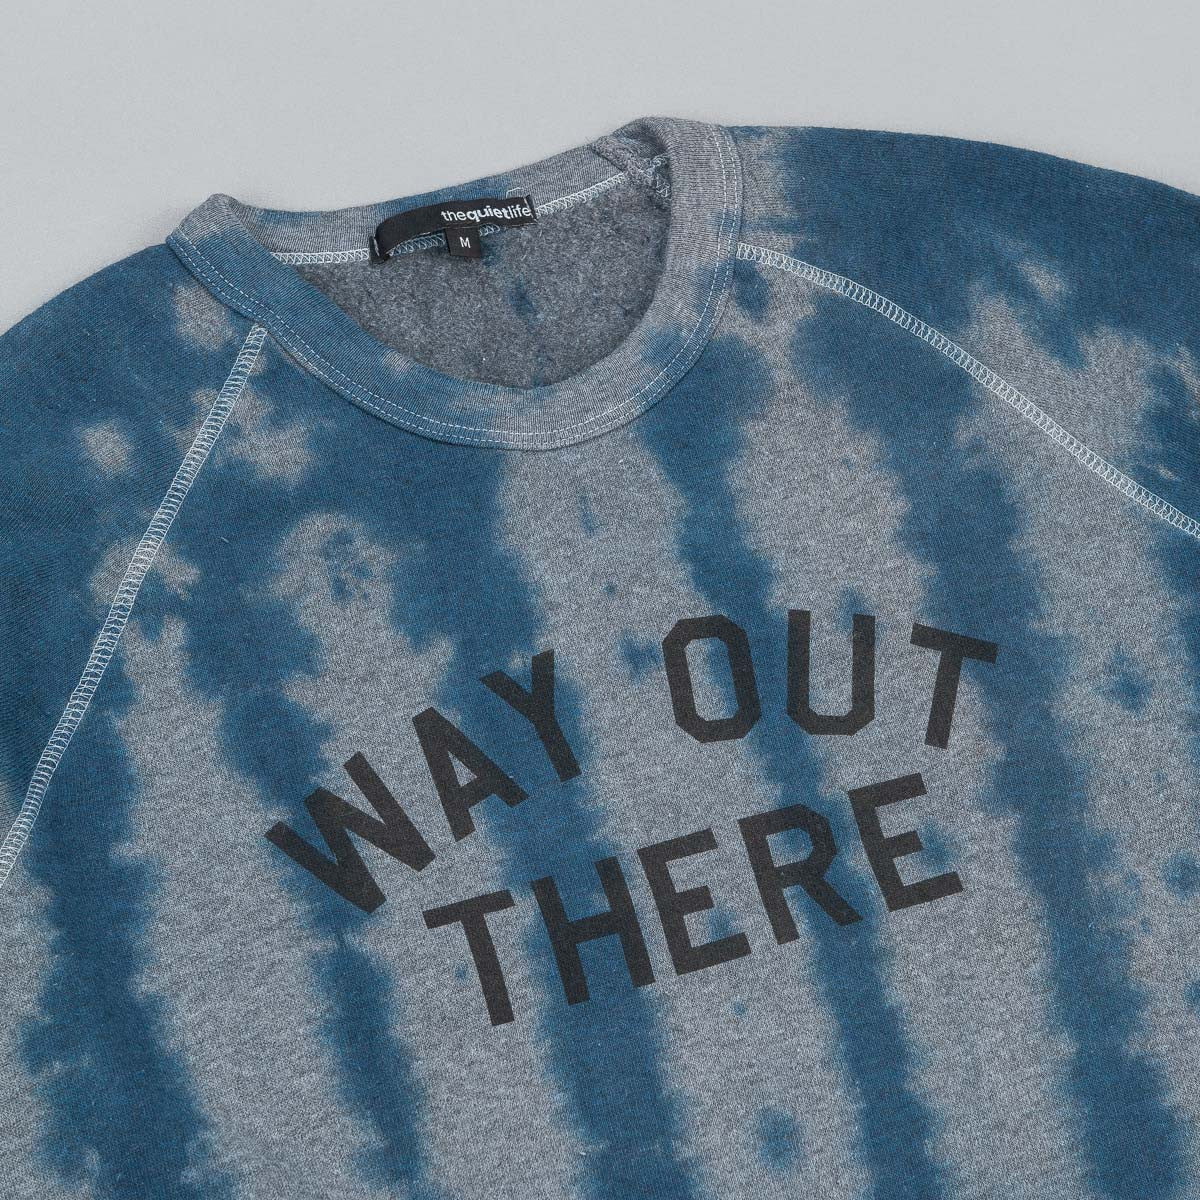 The Quiet Life Way Out There Sweatshirt - Tie Dye Heather Grey